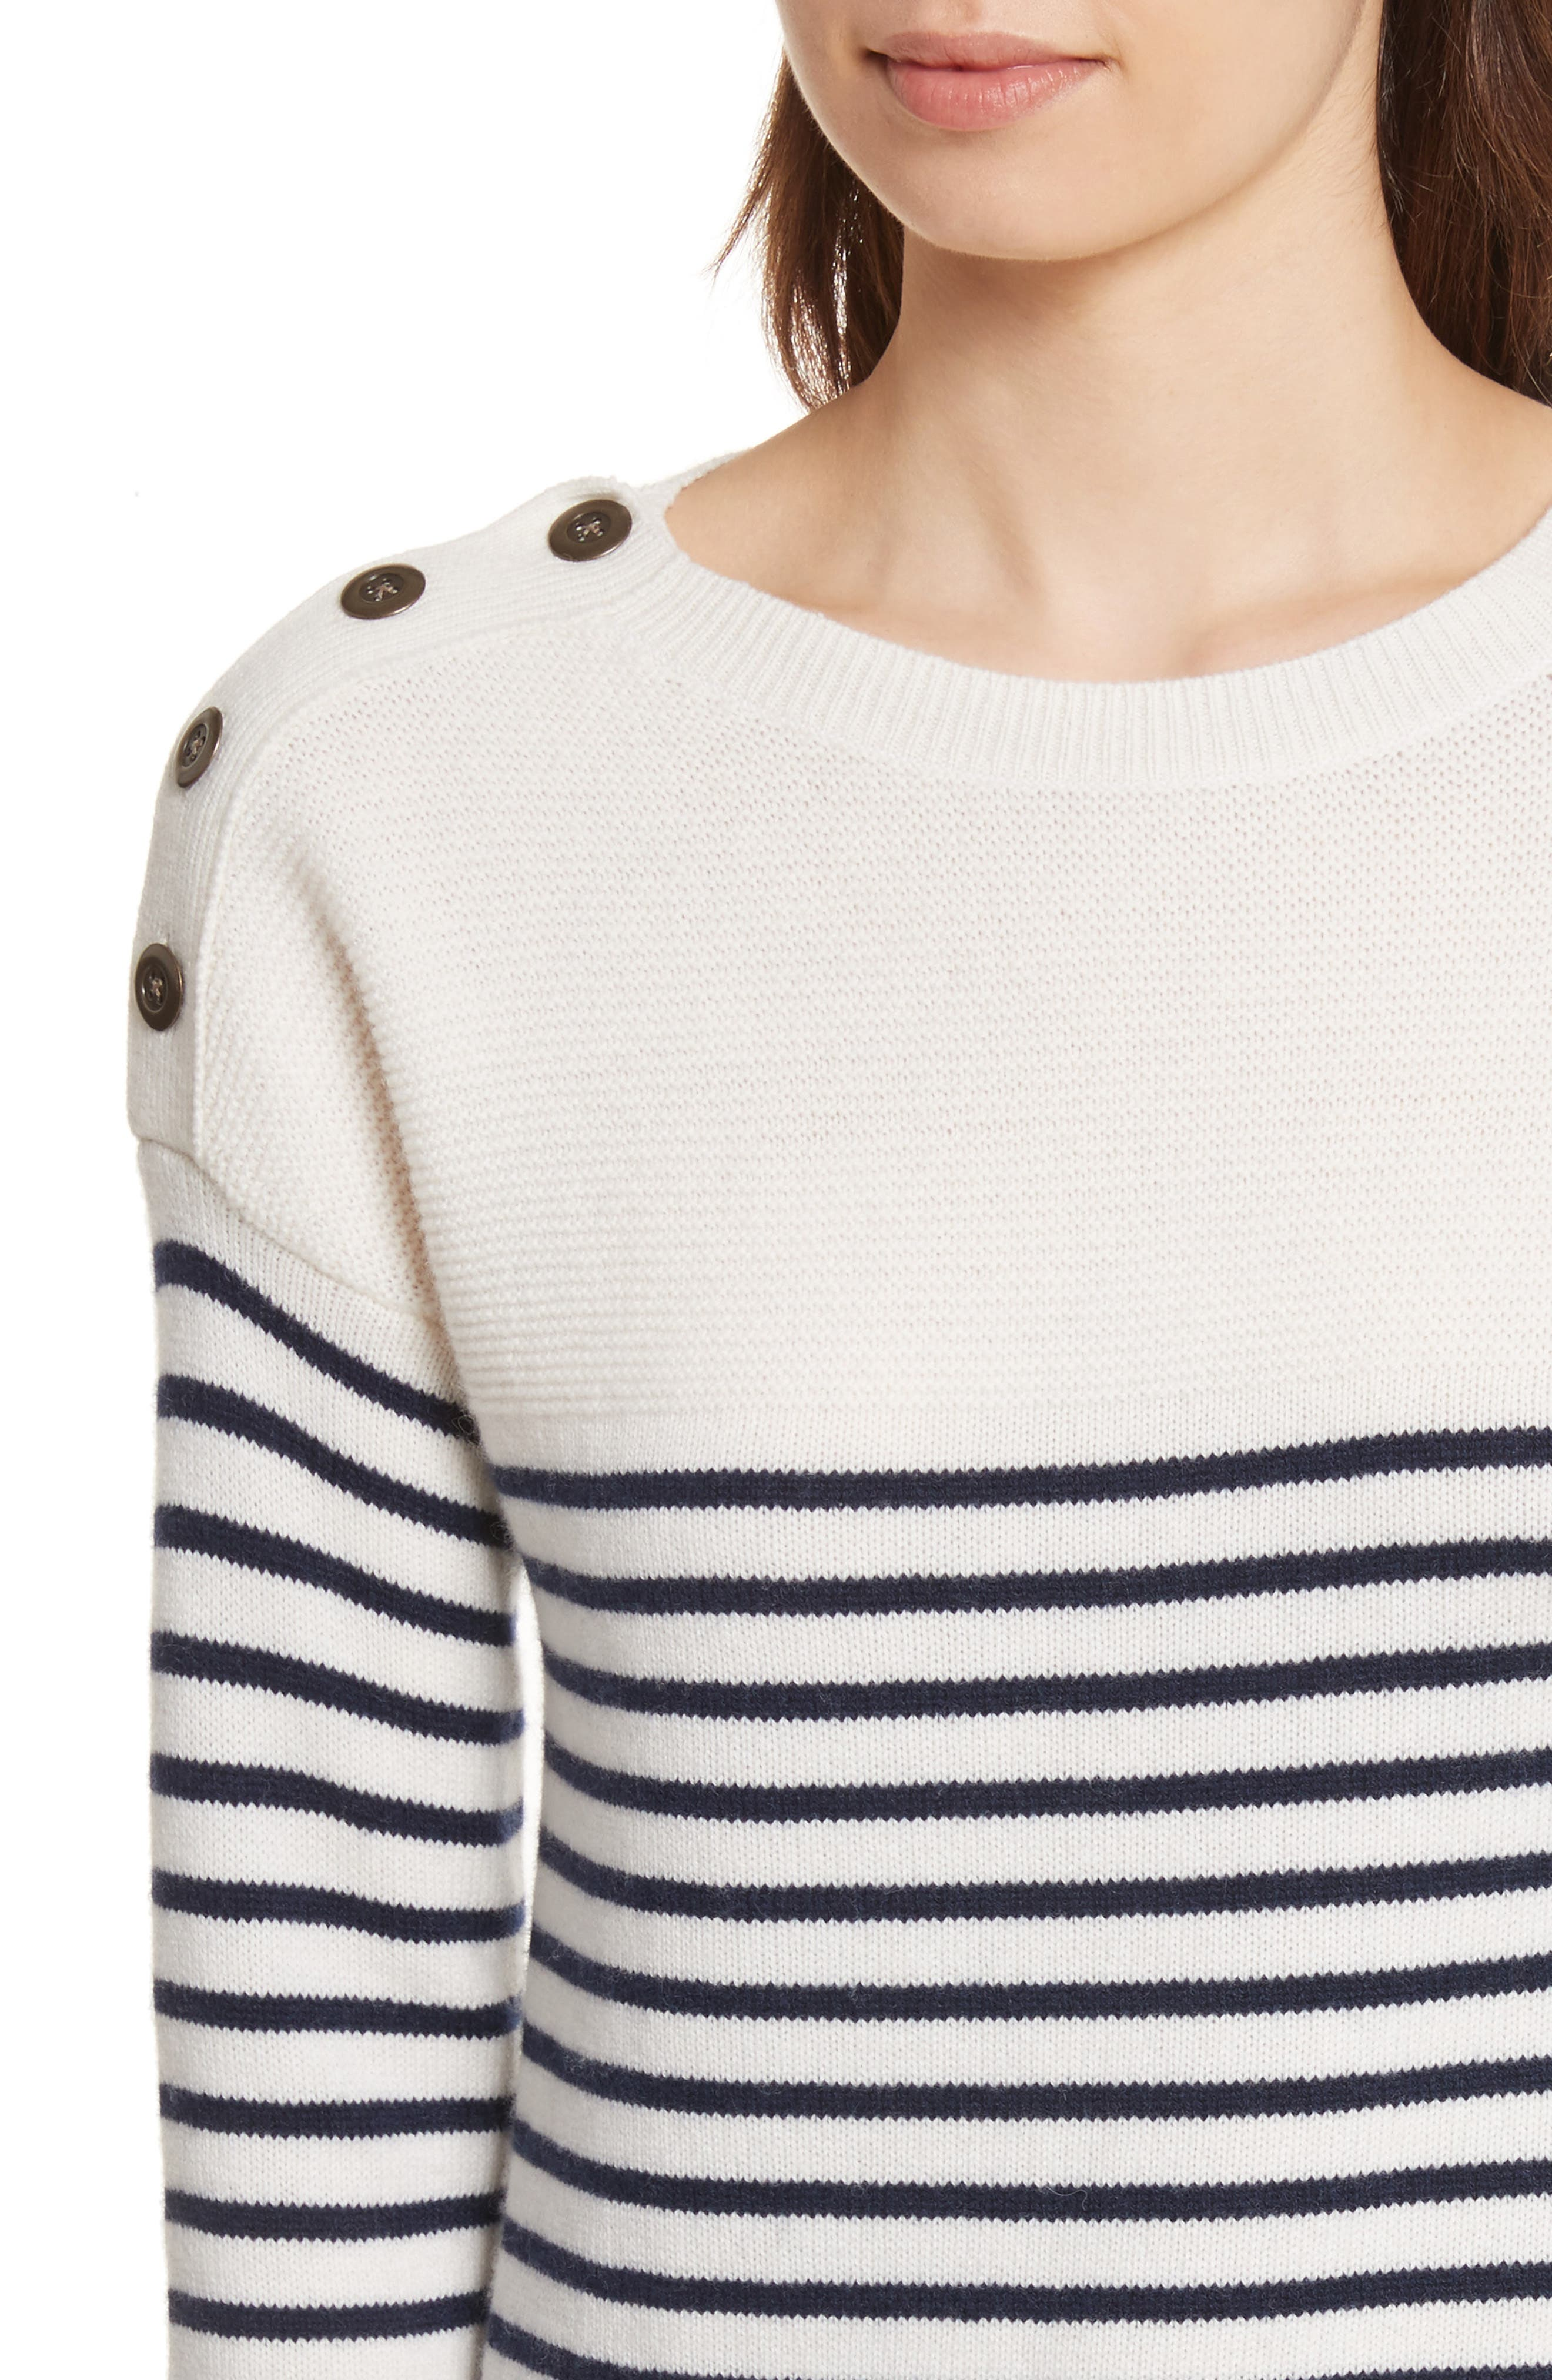 Aefre Woven Trim Wool & Cashmere Sweater,                             Alternate thumbnail 4, color,                             Porcelain/ Midnight